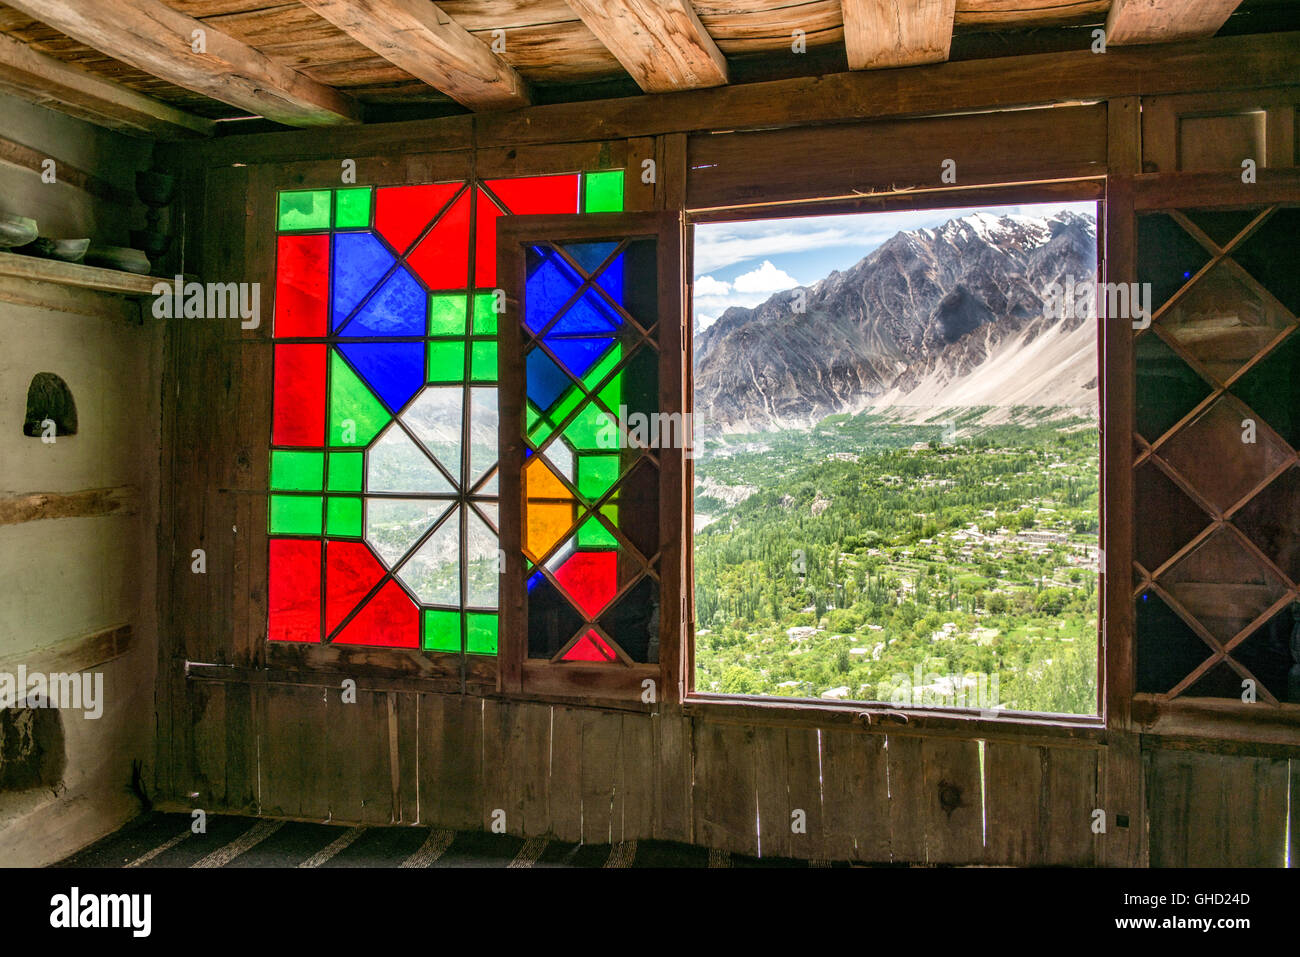 Stained glass window in the Baltit fort in Karimabad, northern Pakistan with a view over the Hunza valley - Stock Image